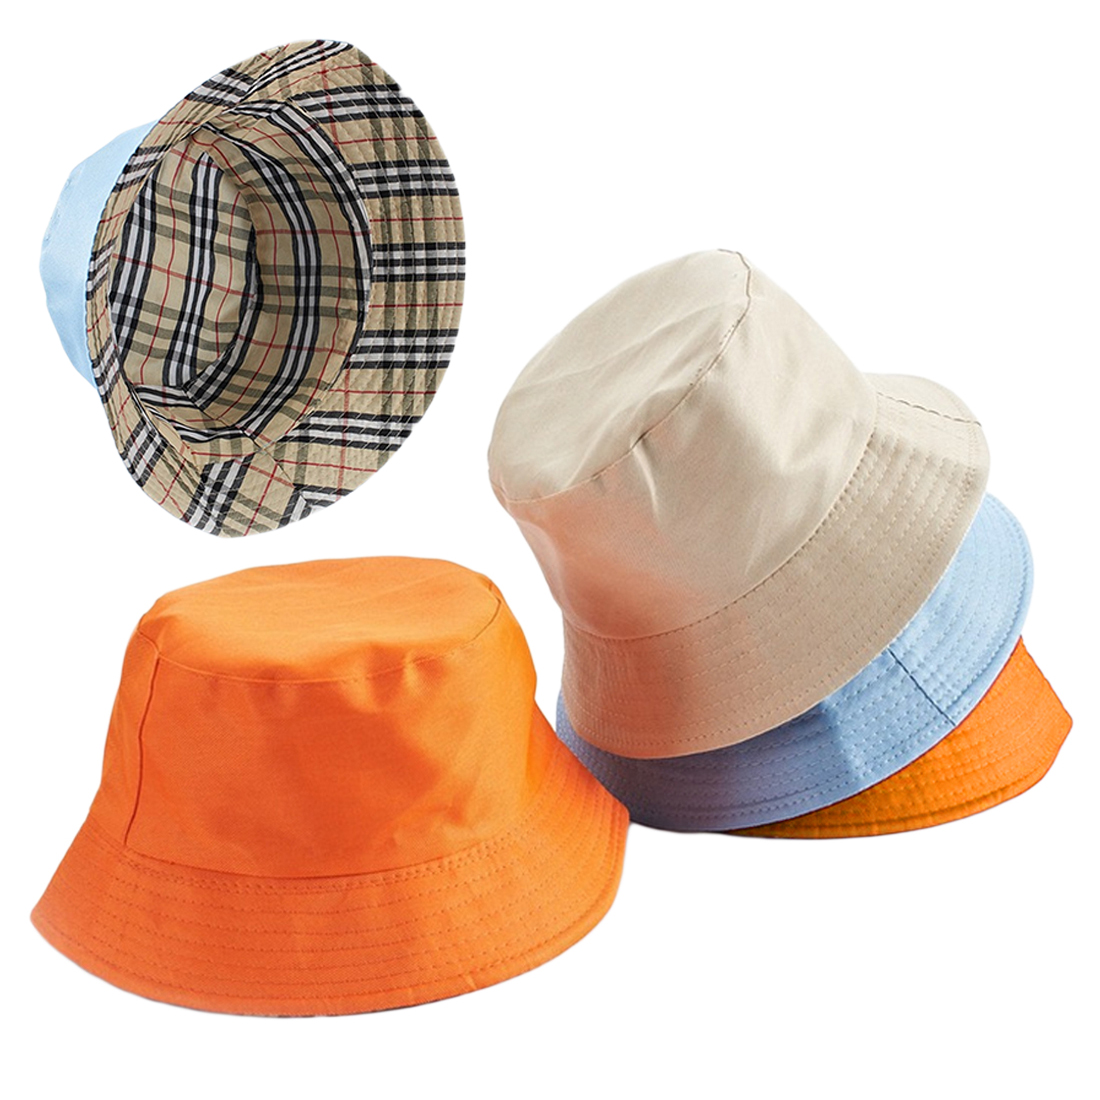 Fashion Sunscreen Men Women Bucket Hat High Quality Cotton Simple Caps Summer Autumn Solid Color Fisherman Panama hats